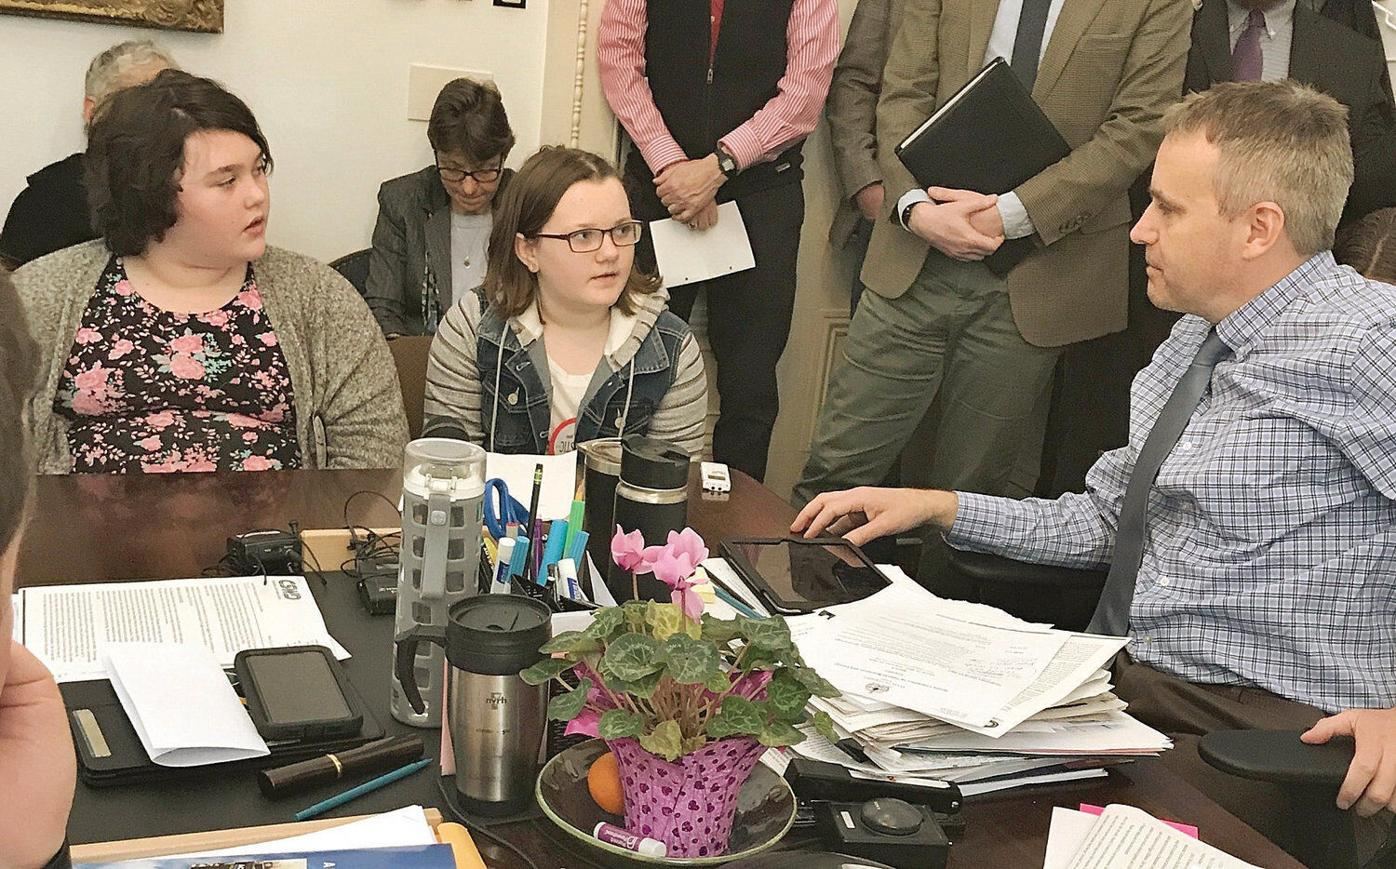 BBA, MEMS students testify in favor of bag ban at Vermont Statehouse